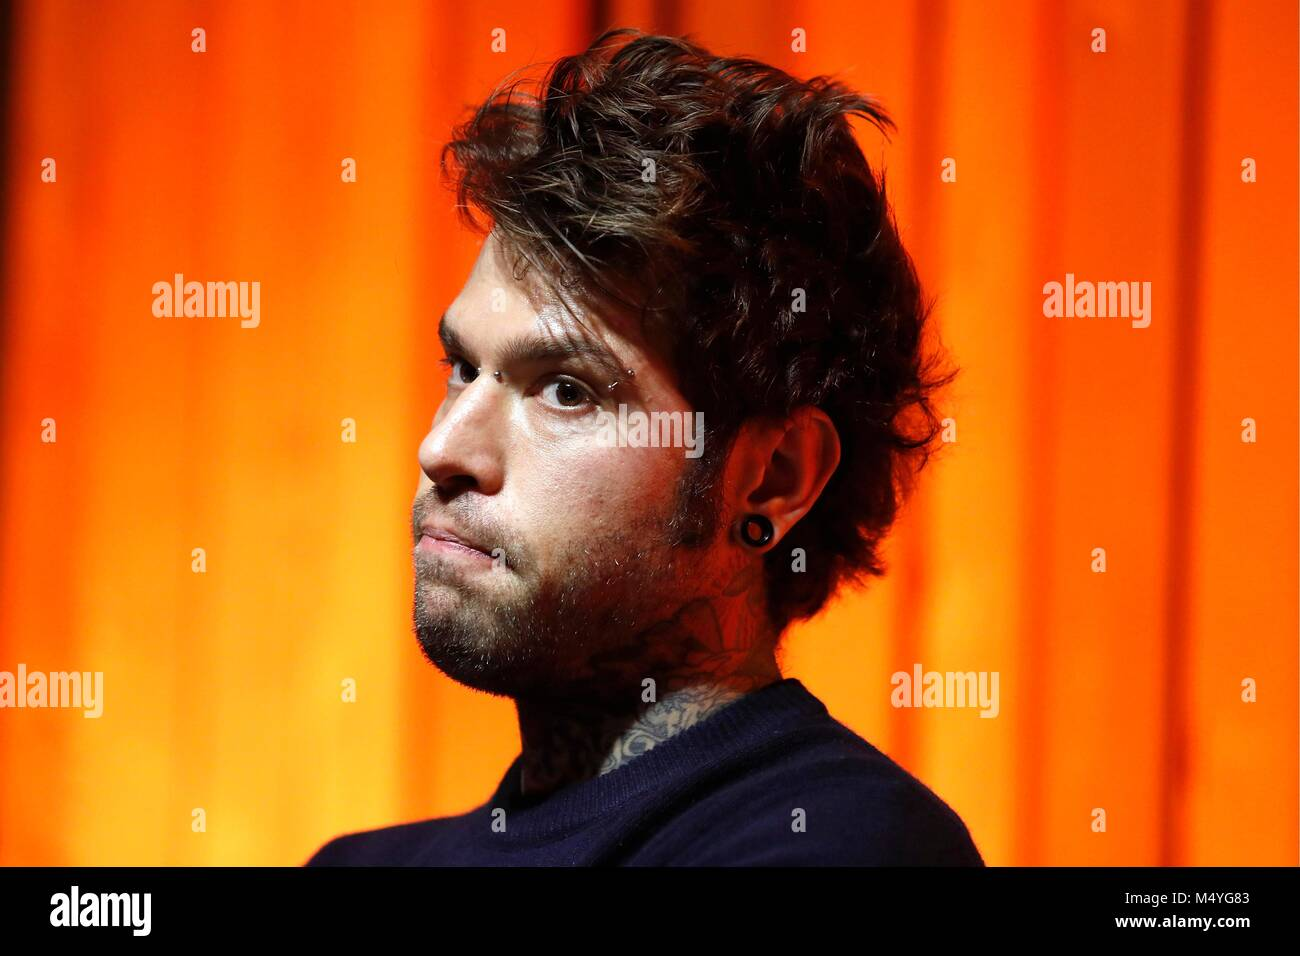 Federico Leonardo Lucia known for his stage name Fedez, an Italian rapper and singer. Rome, Italy, Jan 16, 2018 Stock Photo